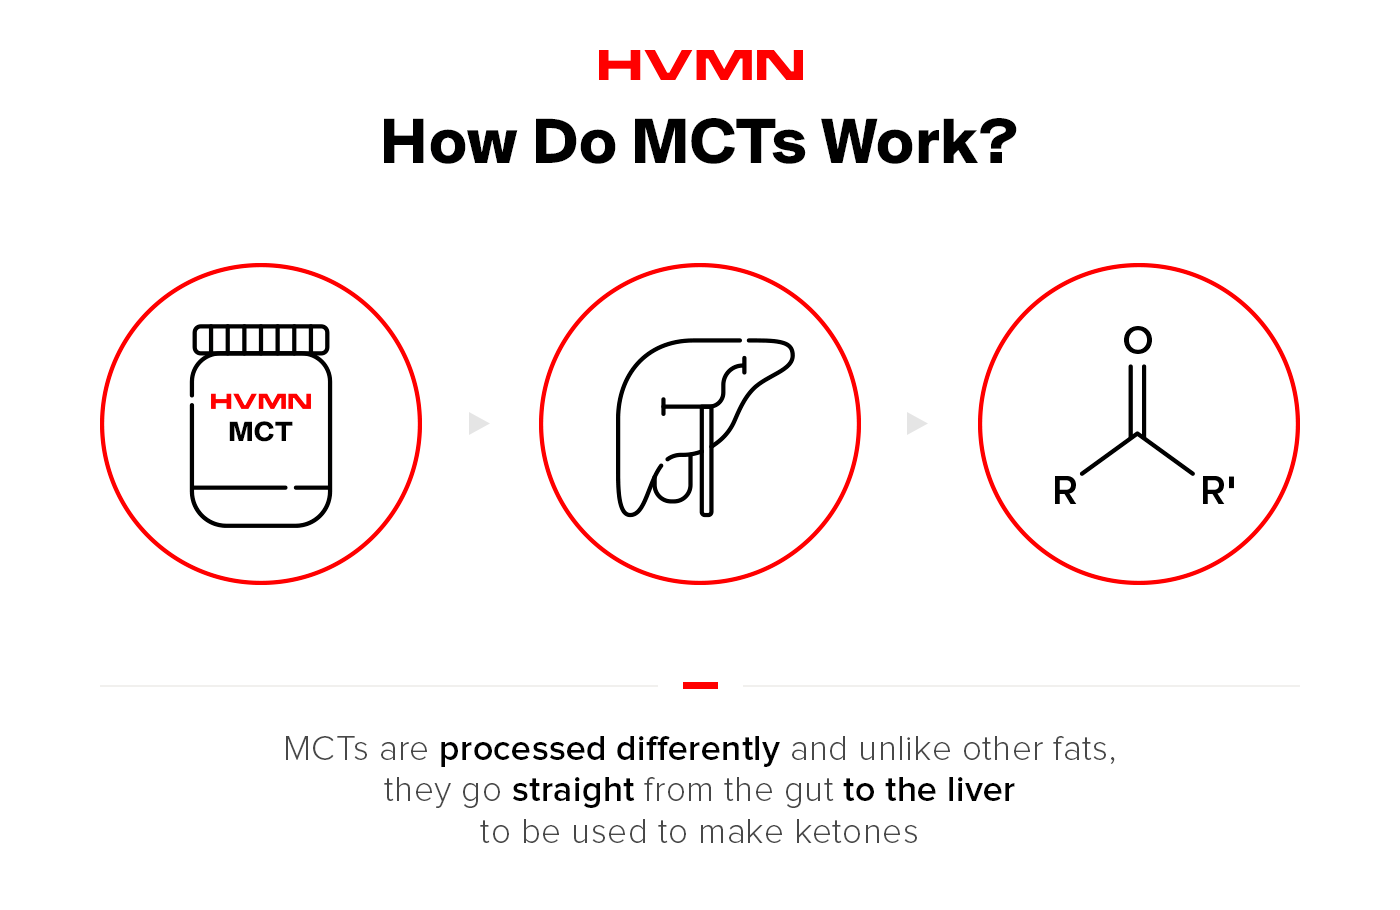 The image shows that MCTs are processed differently from other types of fats. They go straight from the gut to the liver to be used as ketones.